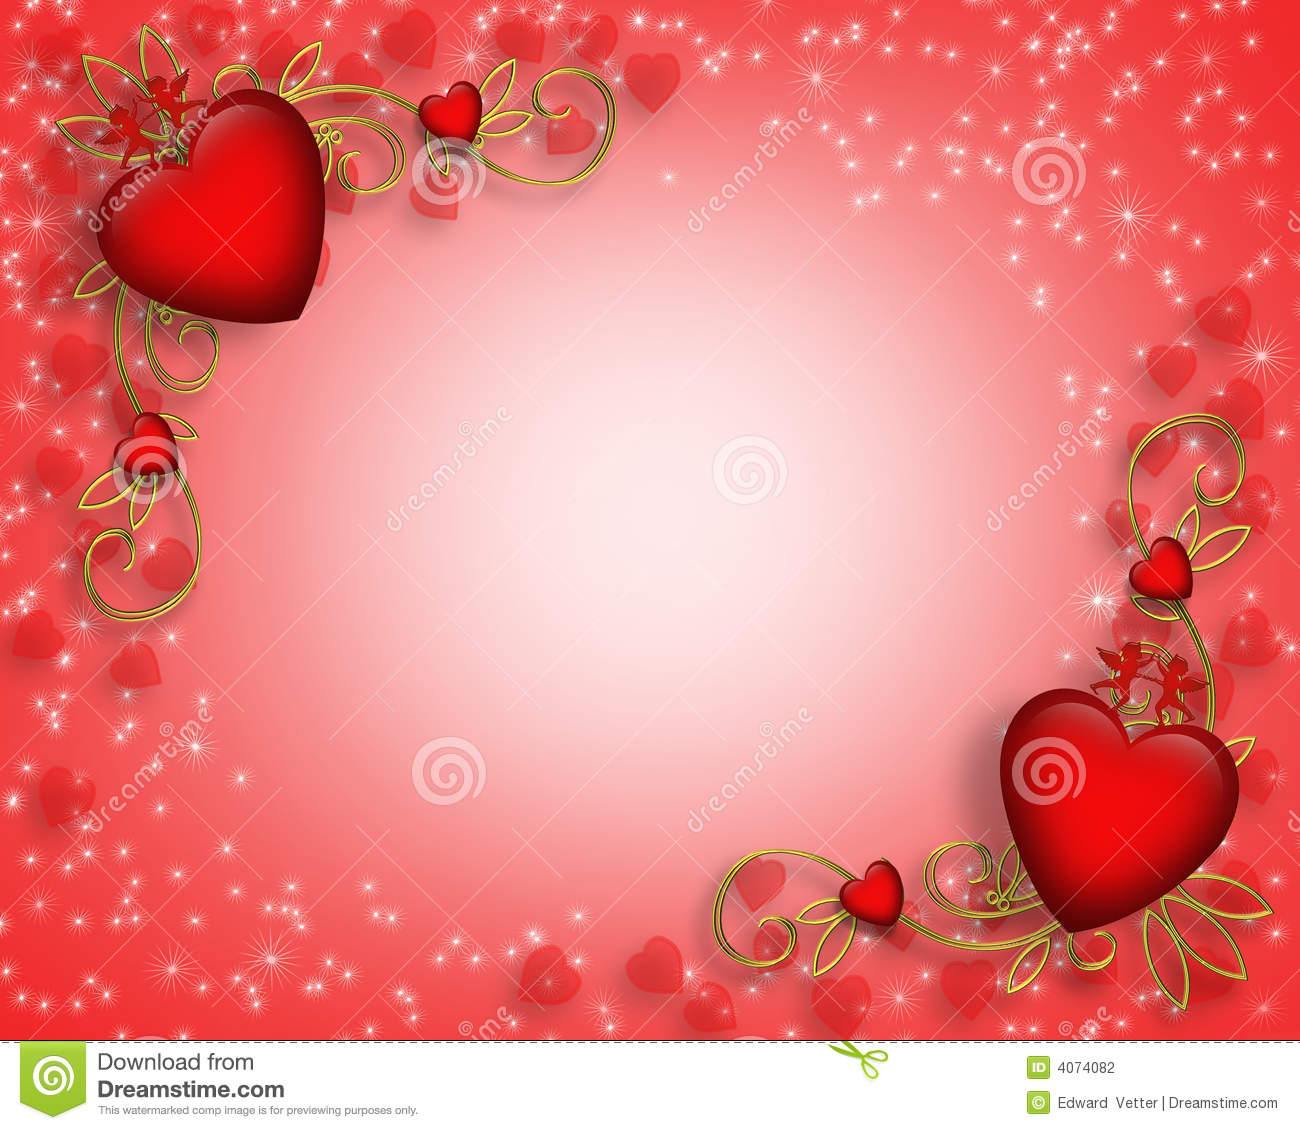 Valentines Day Card Border Or Background Stock Photography - Image ...